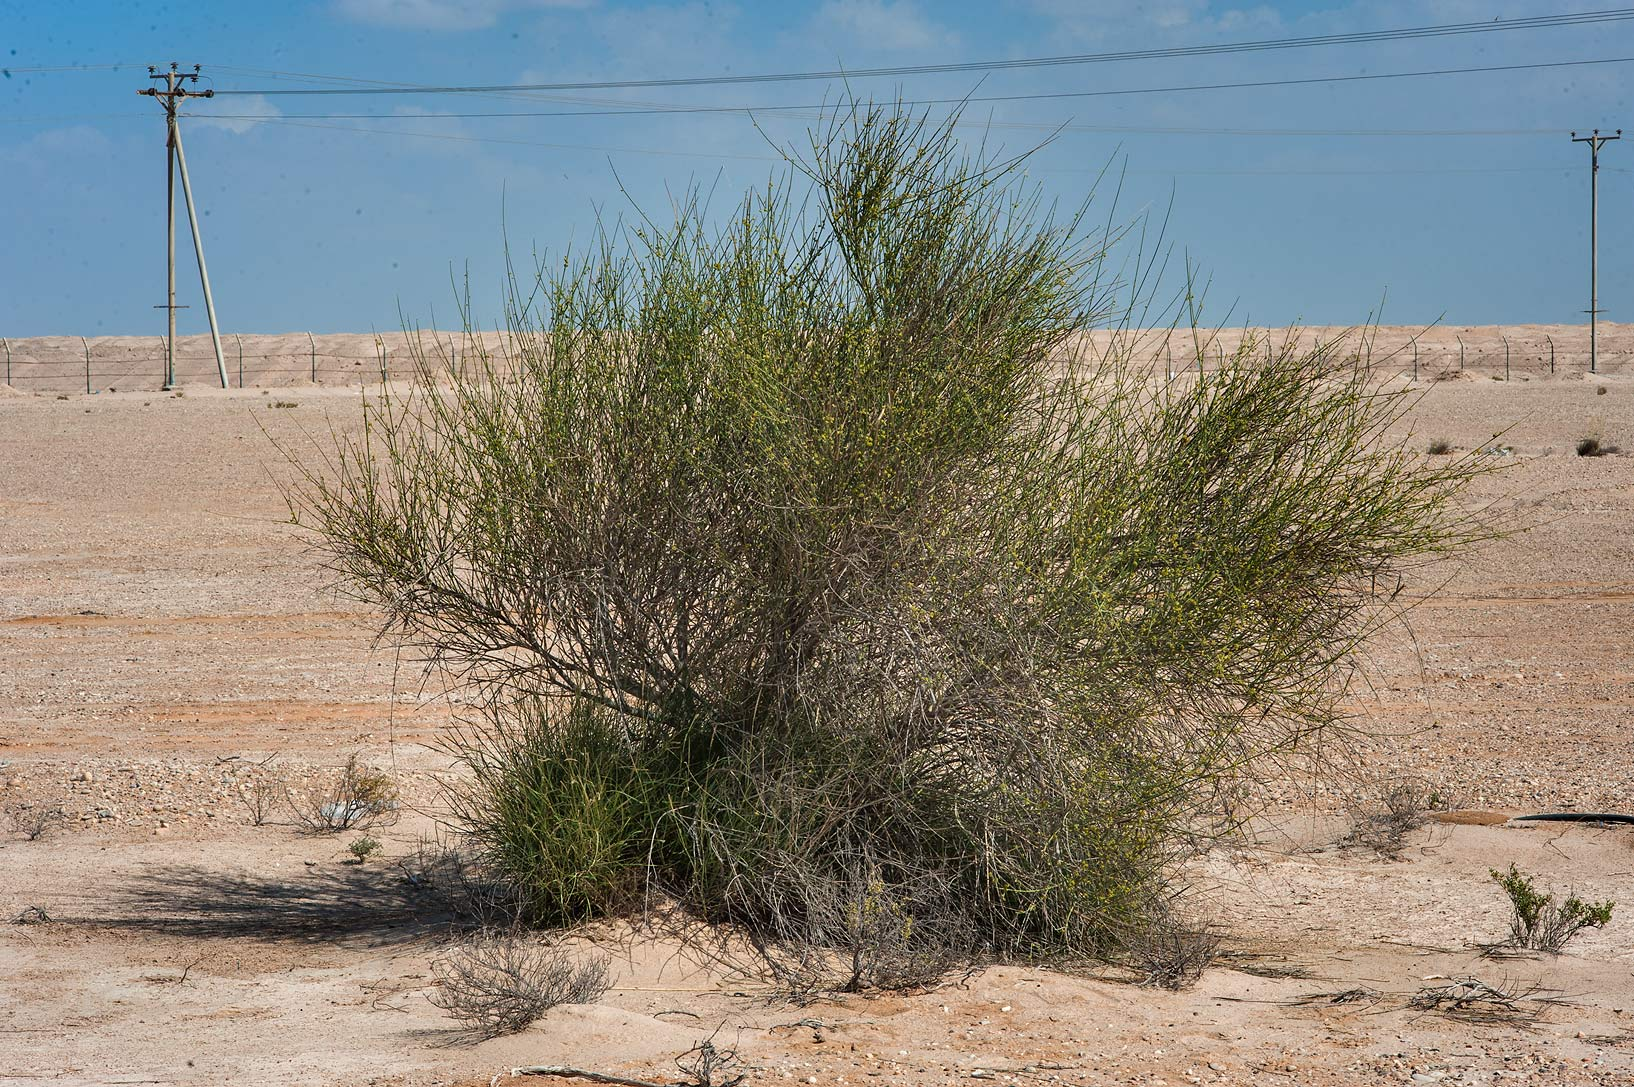 Bush of Leptadenia pyrotechnica on the border of...Irkaya) Farms. South-western Qatar